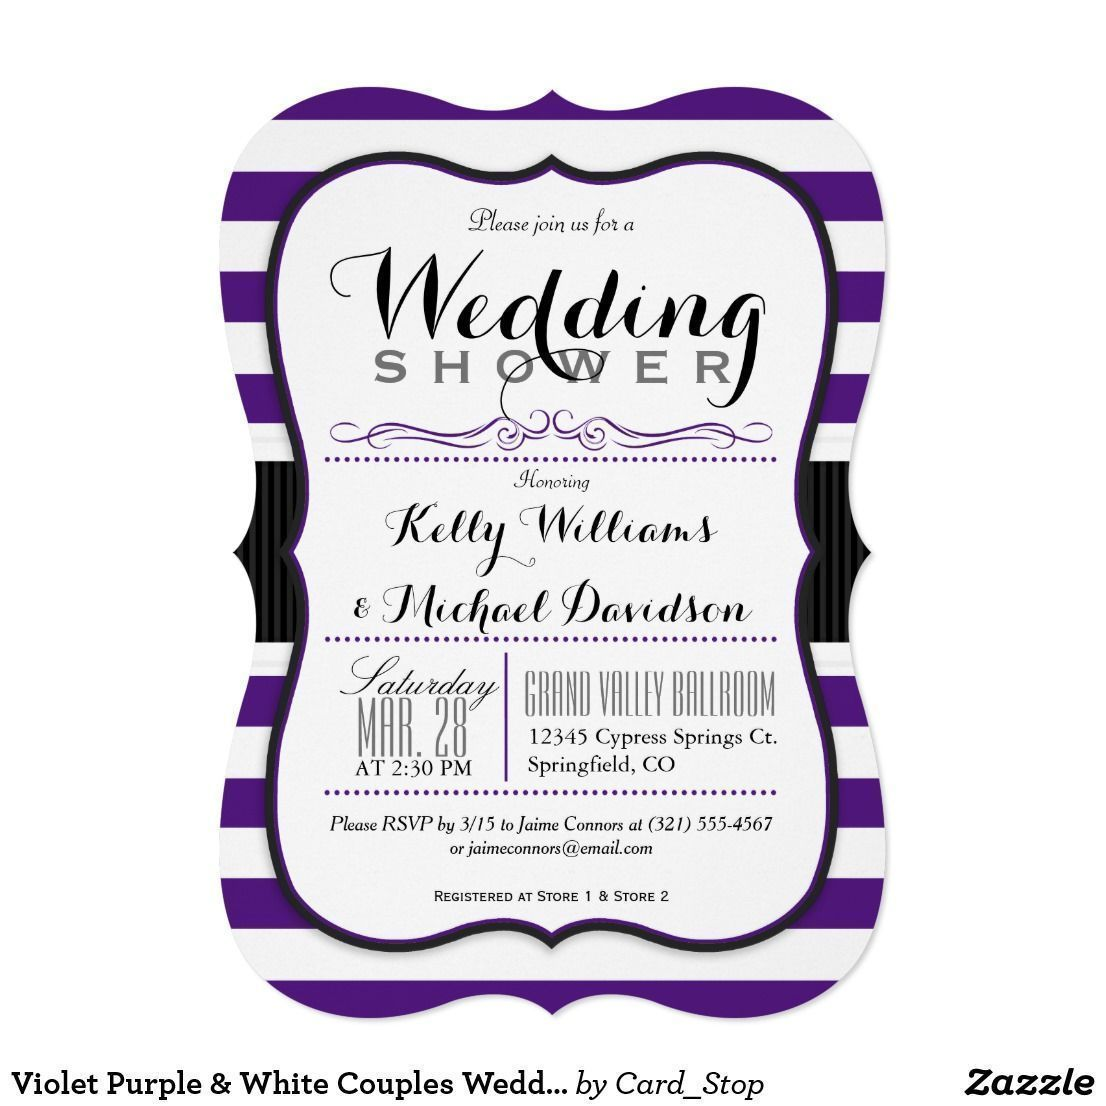 Violet Purple White Couples Wedding Shower Card Elegant Formal